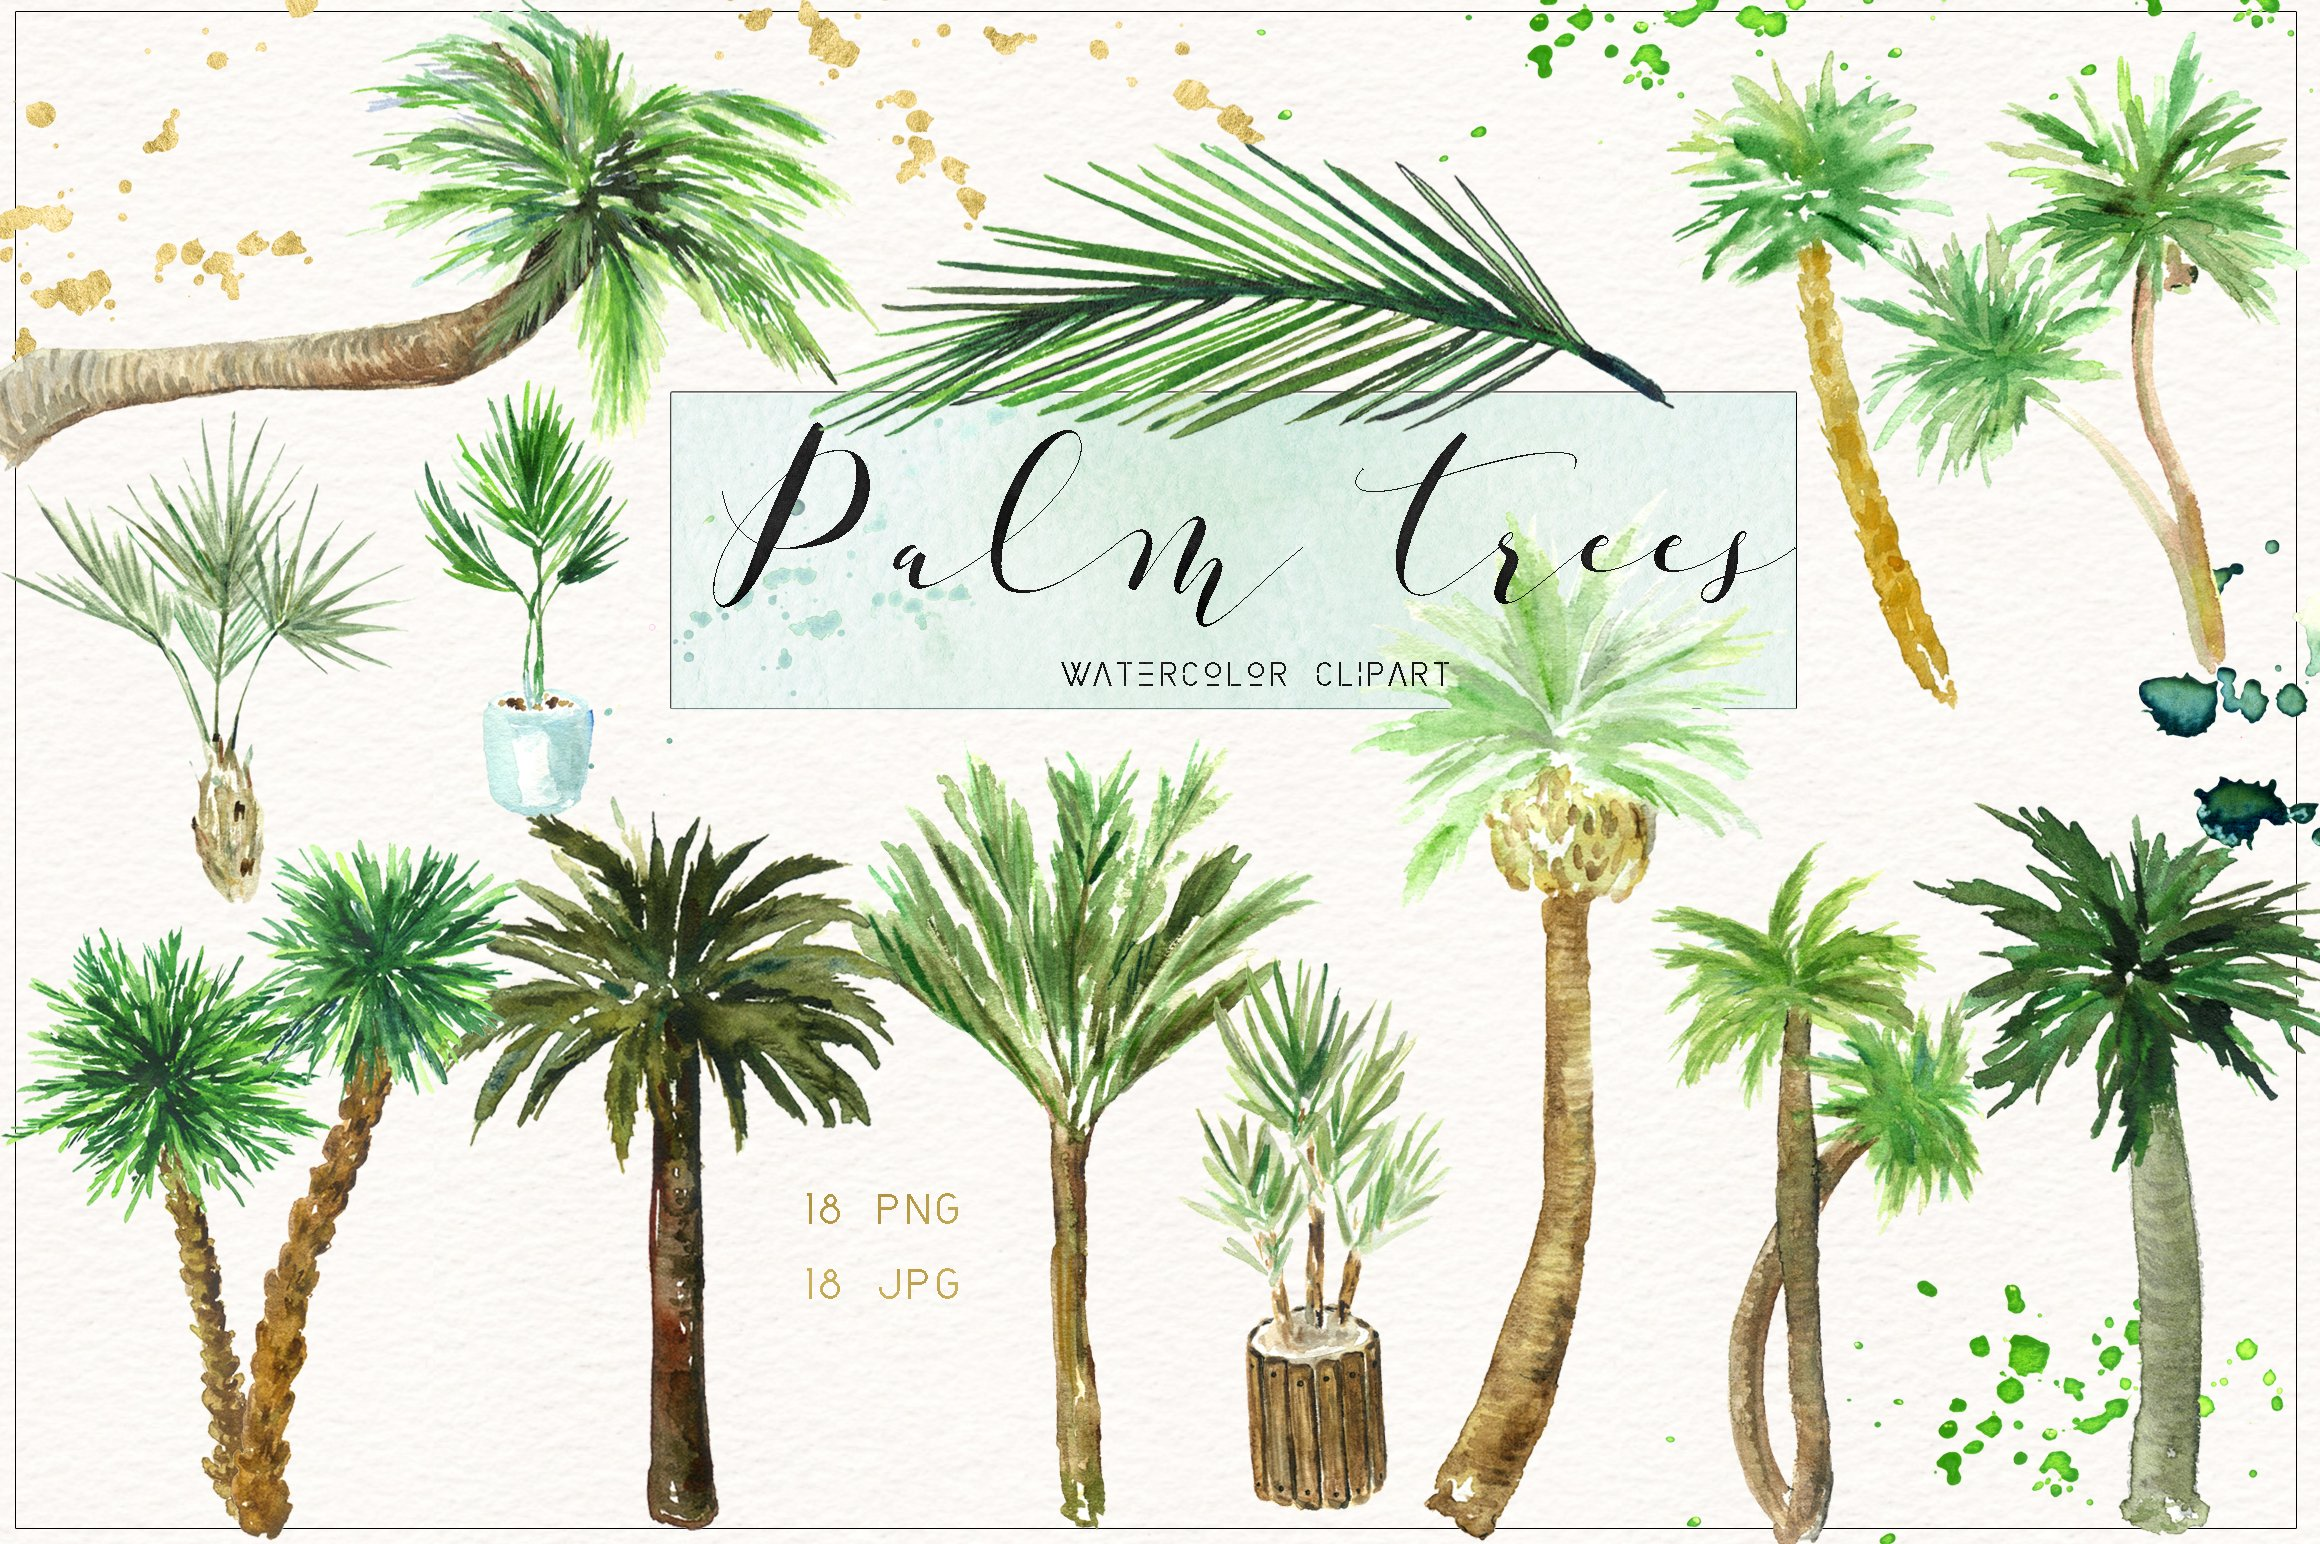 Palm tree. Watercolor clipart. ~ Illustrations ~ Creative Market